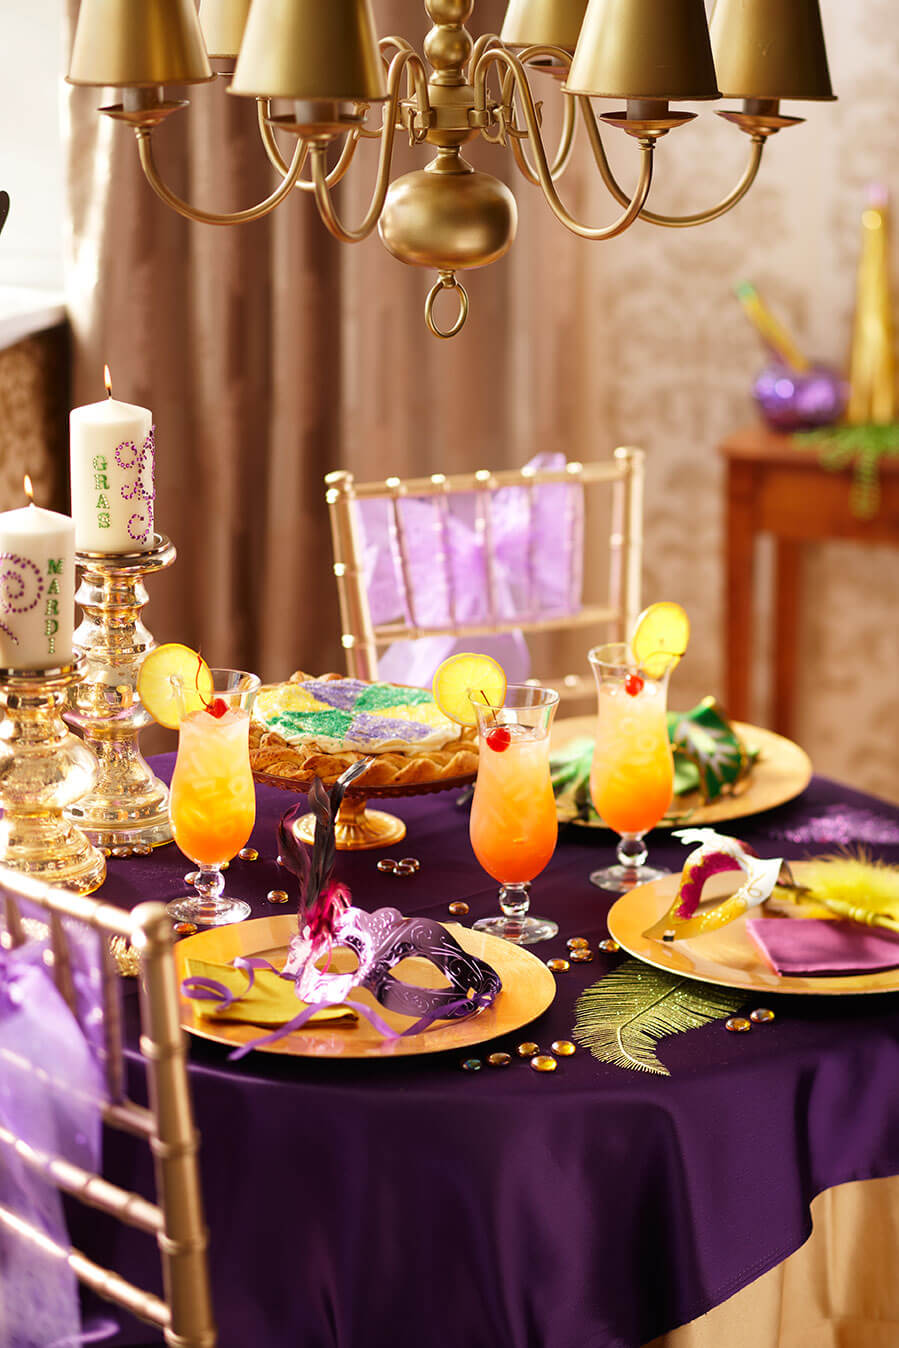 Sandra_Lee-mardigras-tablescape3